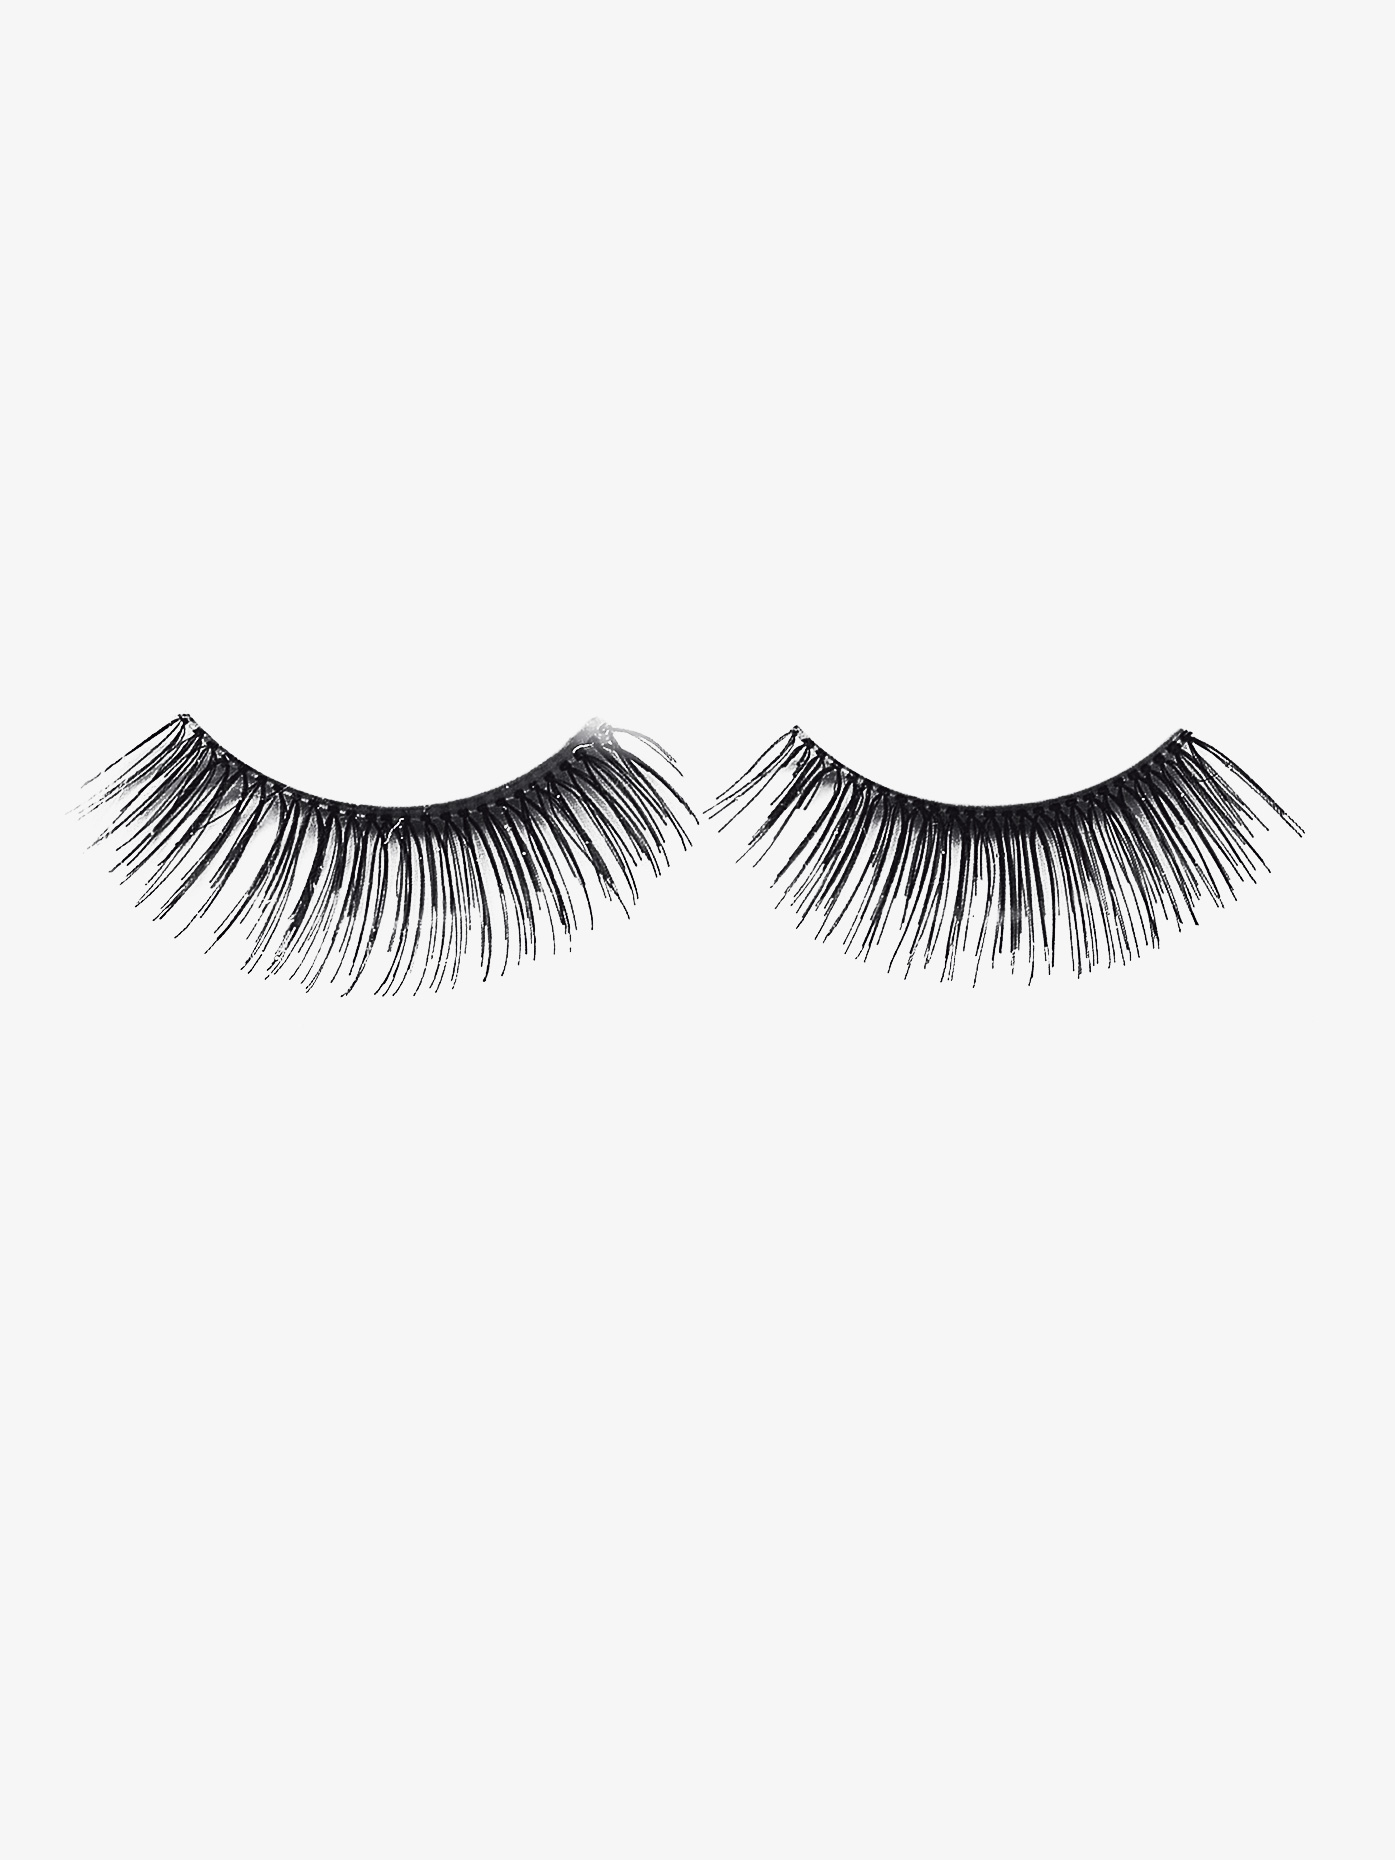 Heavyweight Performance Eyelashes - Accessories | Bunheads BH601 ...